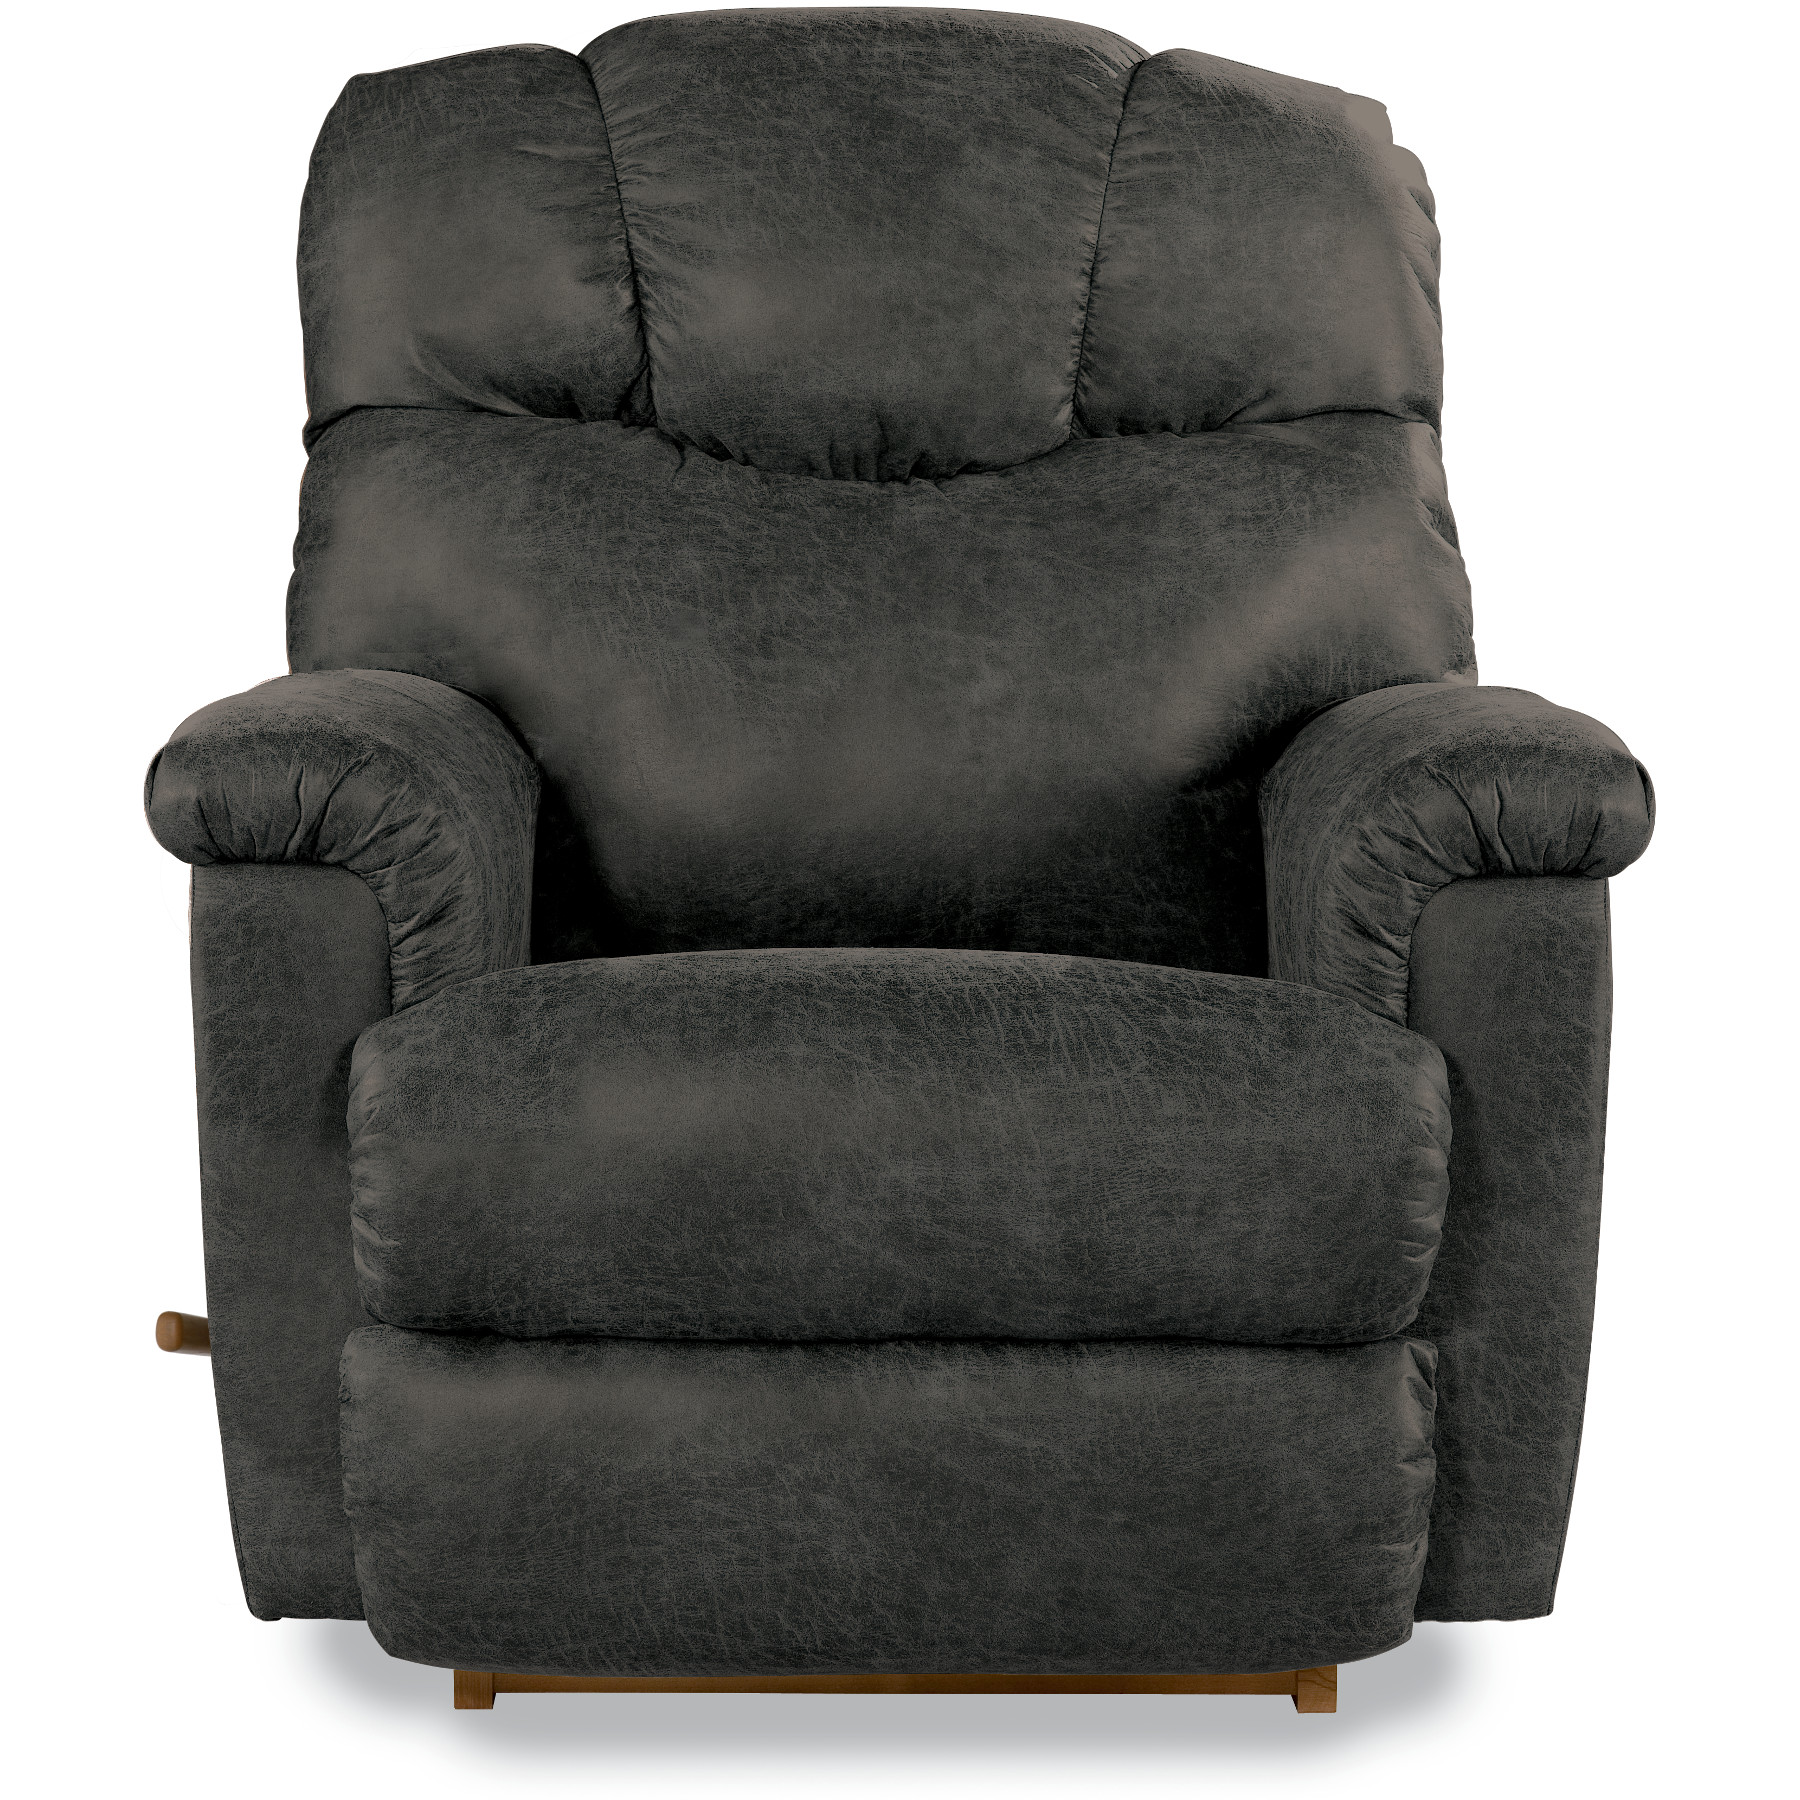 La-Z-Boy PALANCE ROCKER RECLINER STEEL